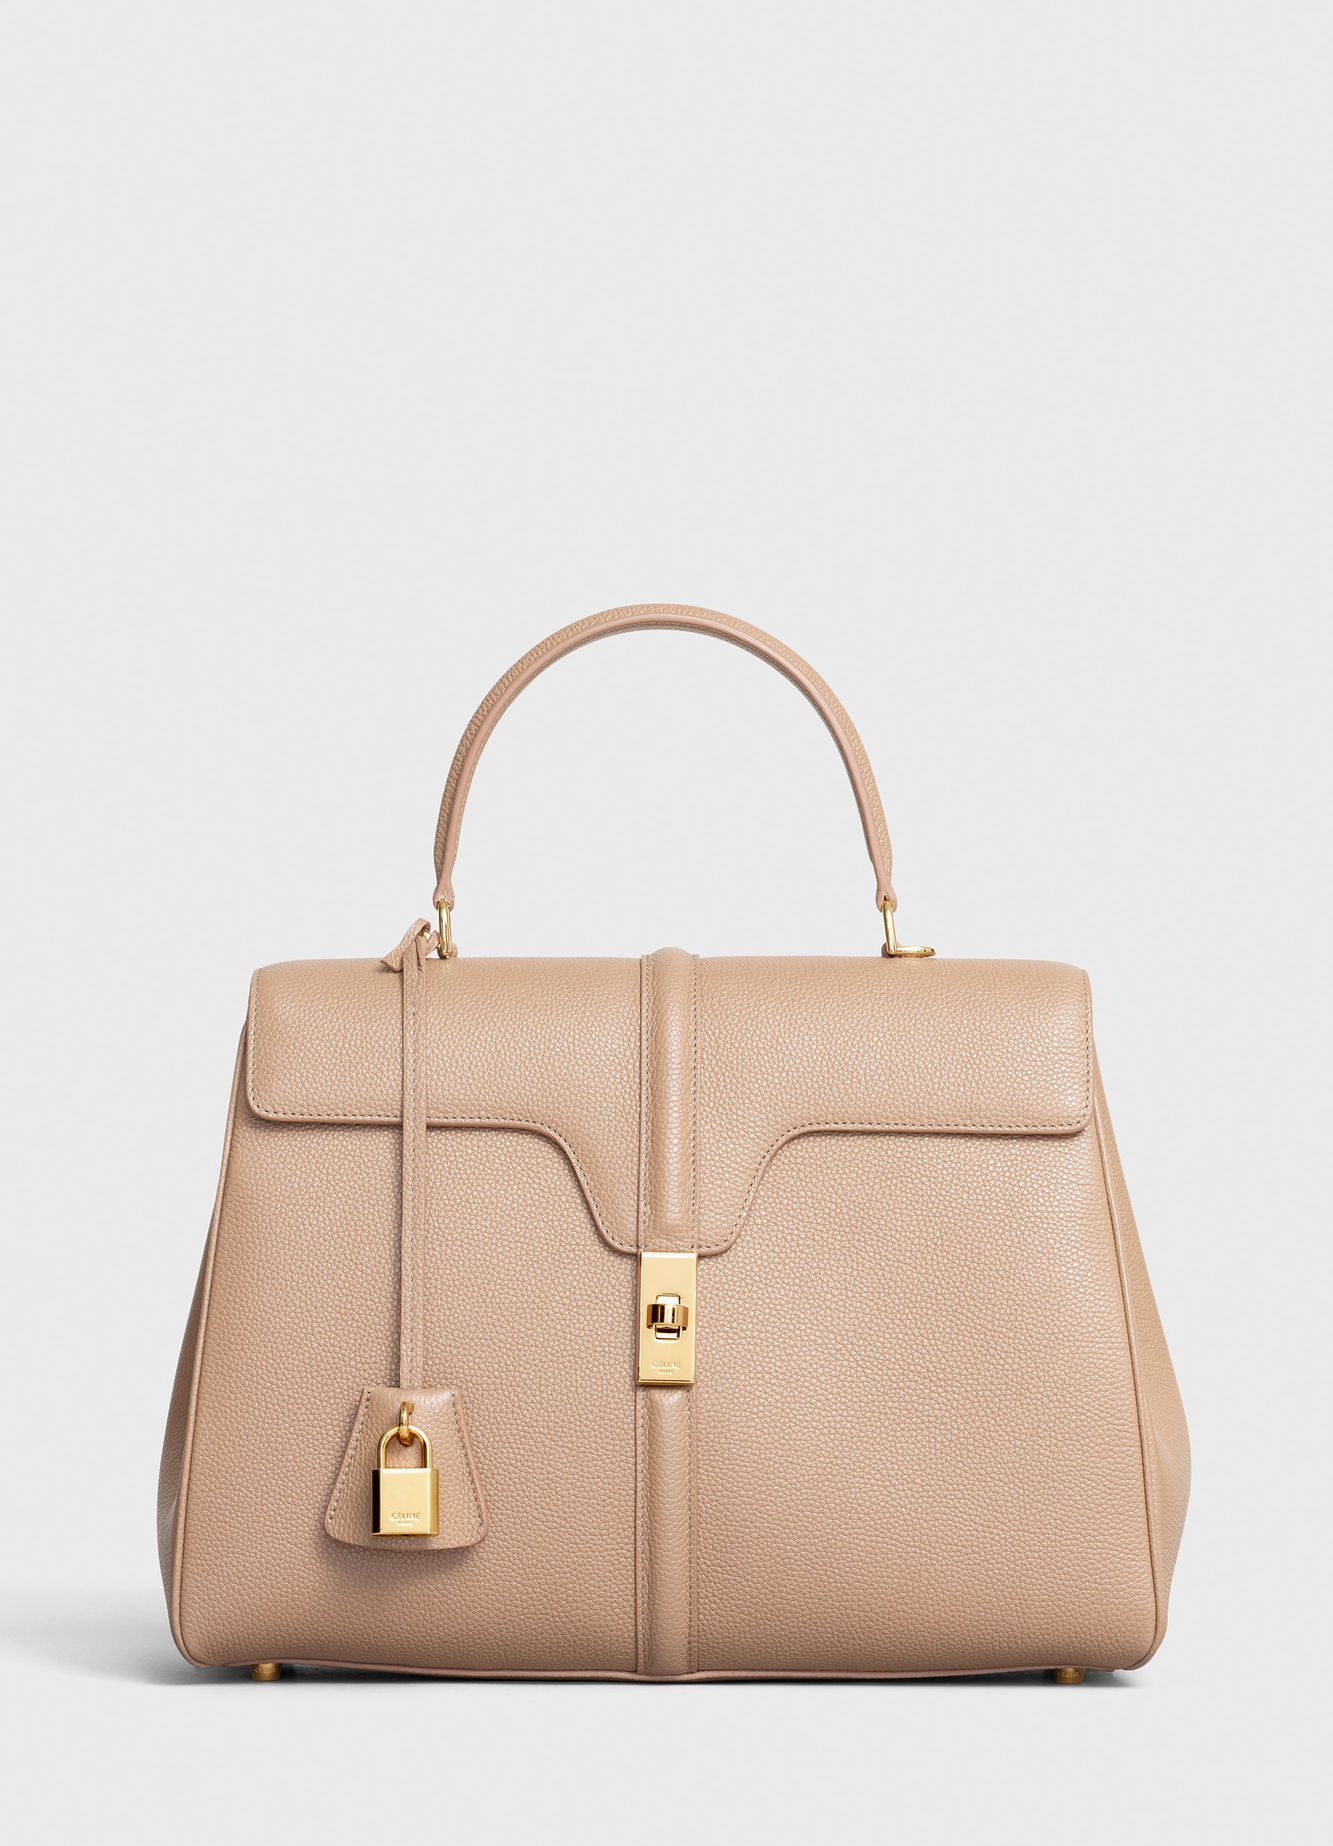 CELINE MEDIUM 16 BAG IN SATINATED CALFSKIN 187373 BEIGE